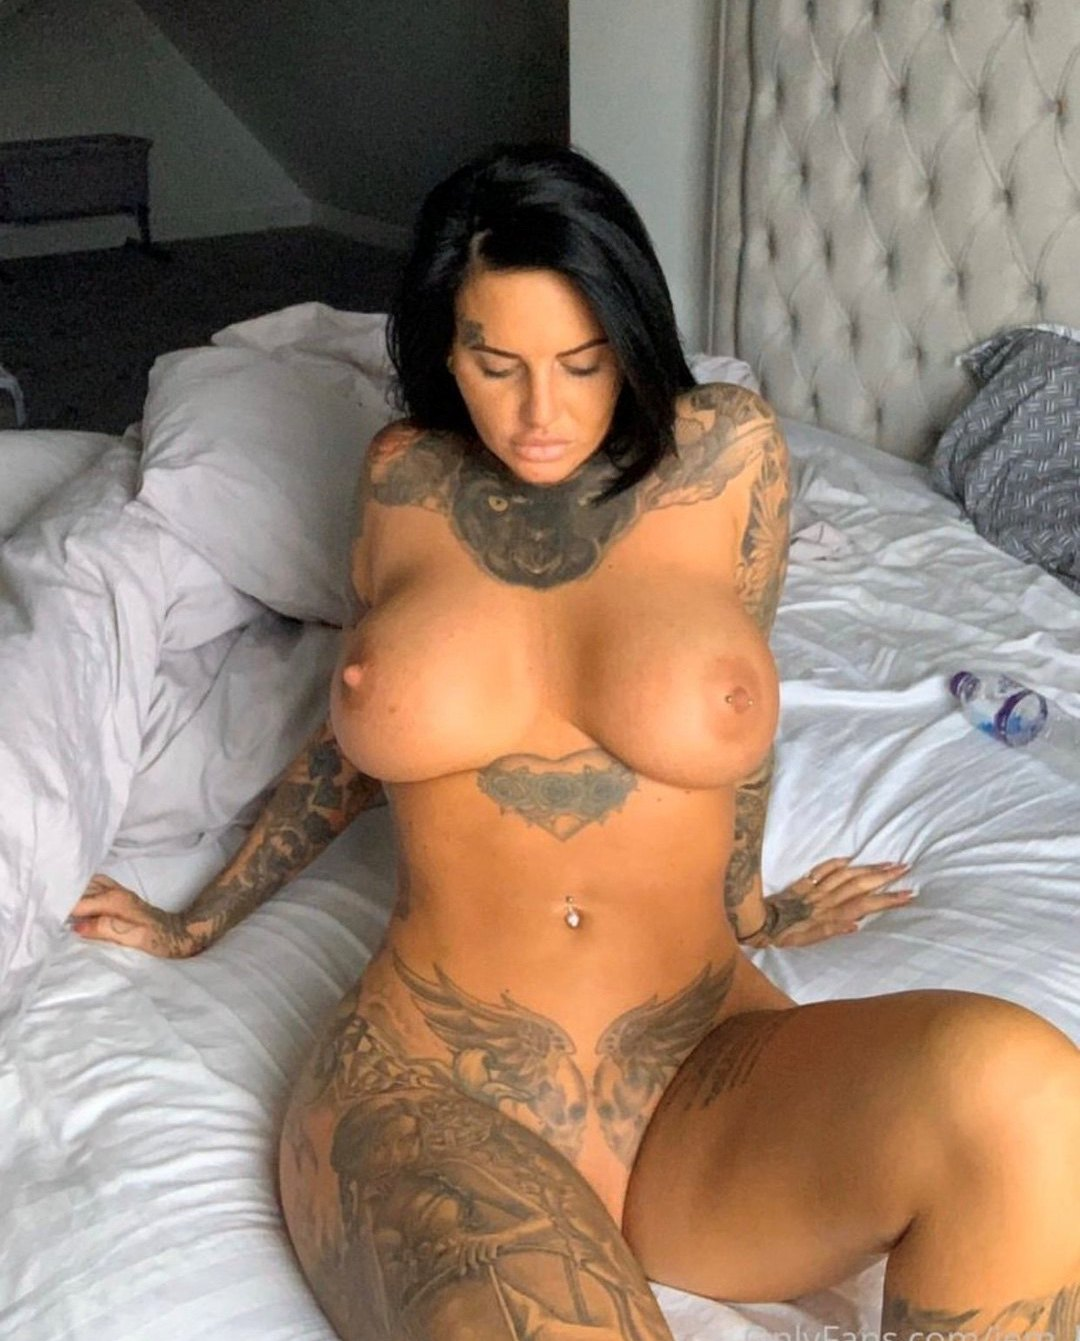 Bethany Spiby Bethany Spiby Onlyfans Nudes Leaks 0015